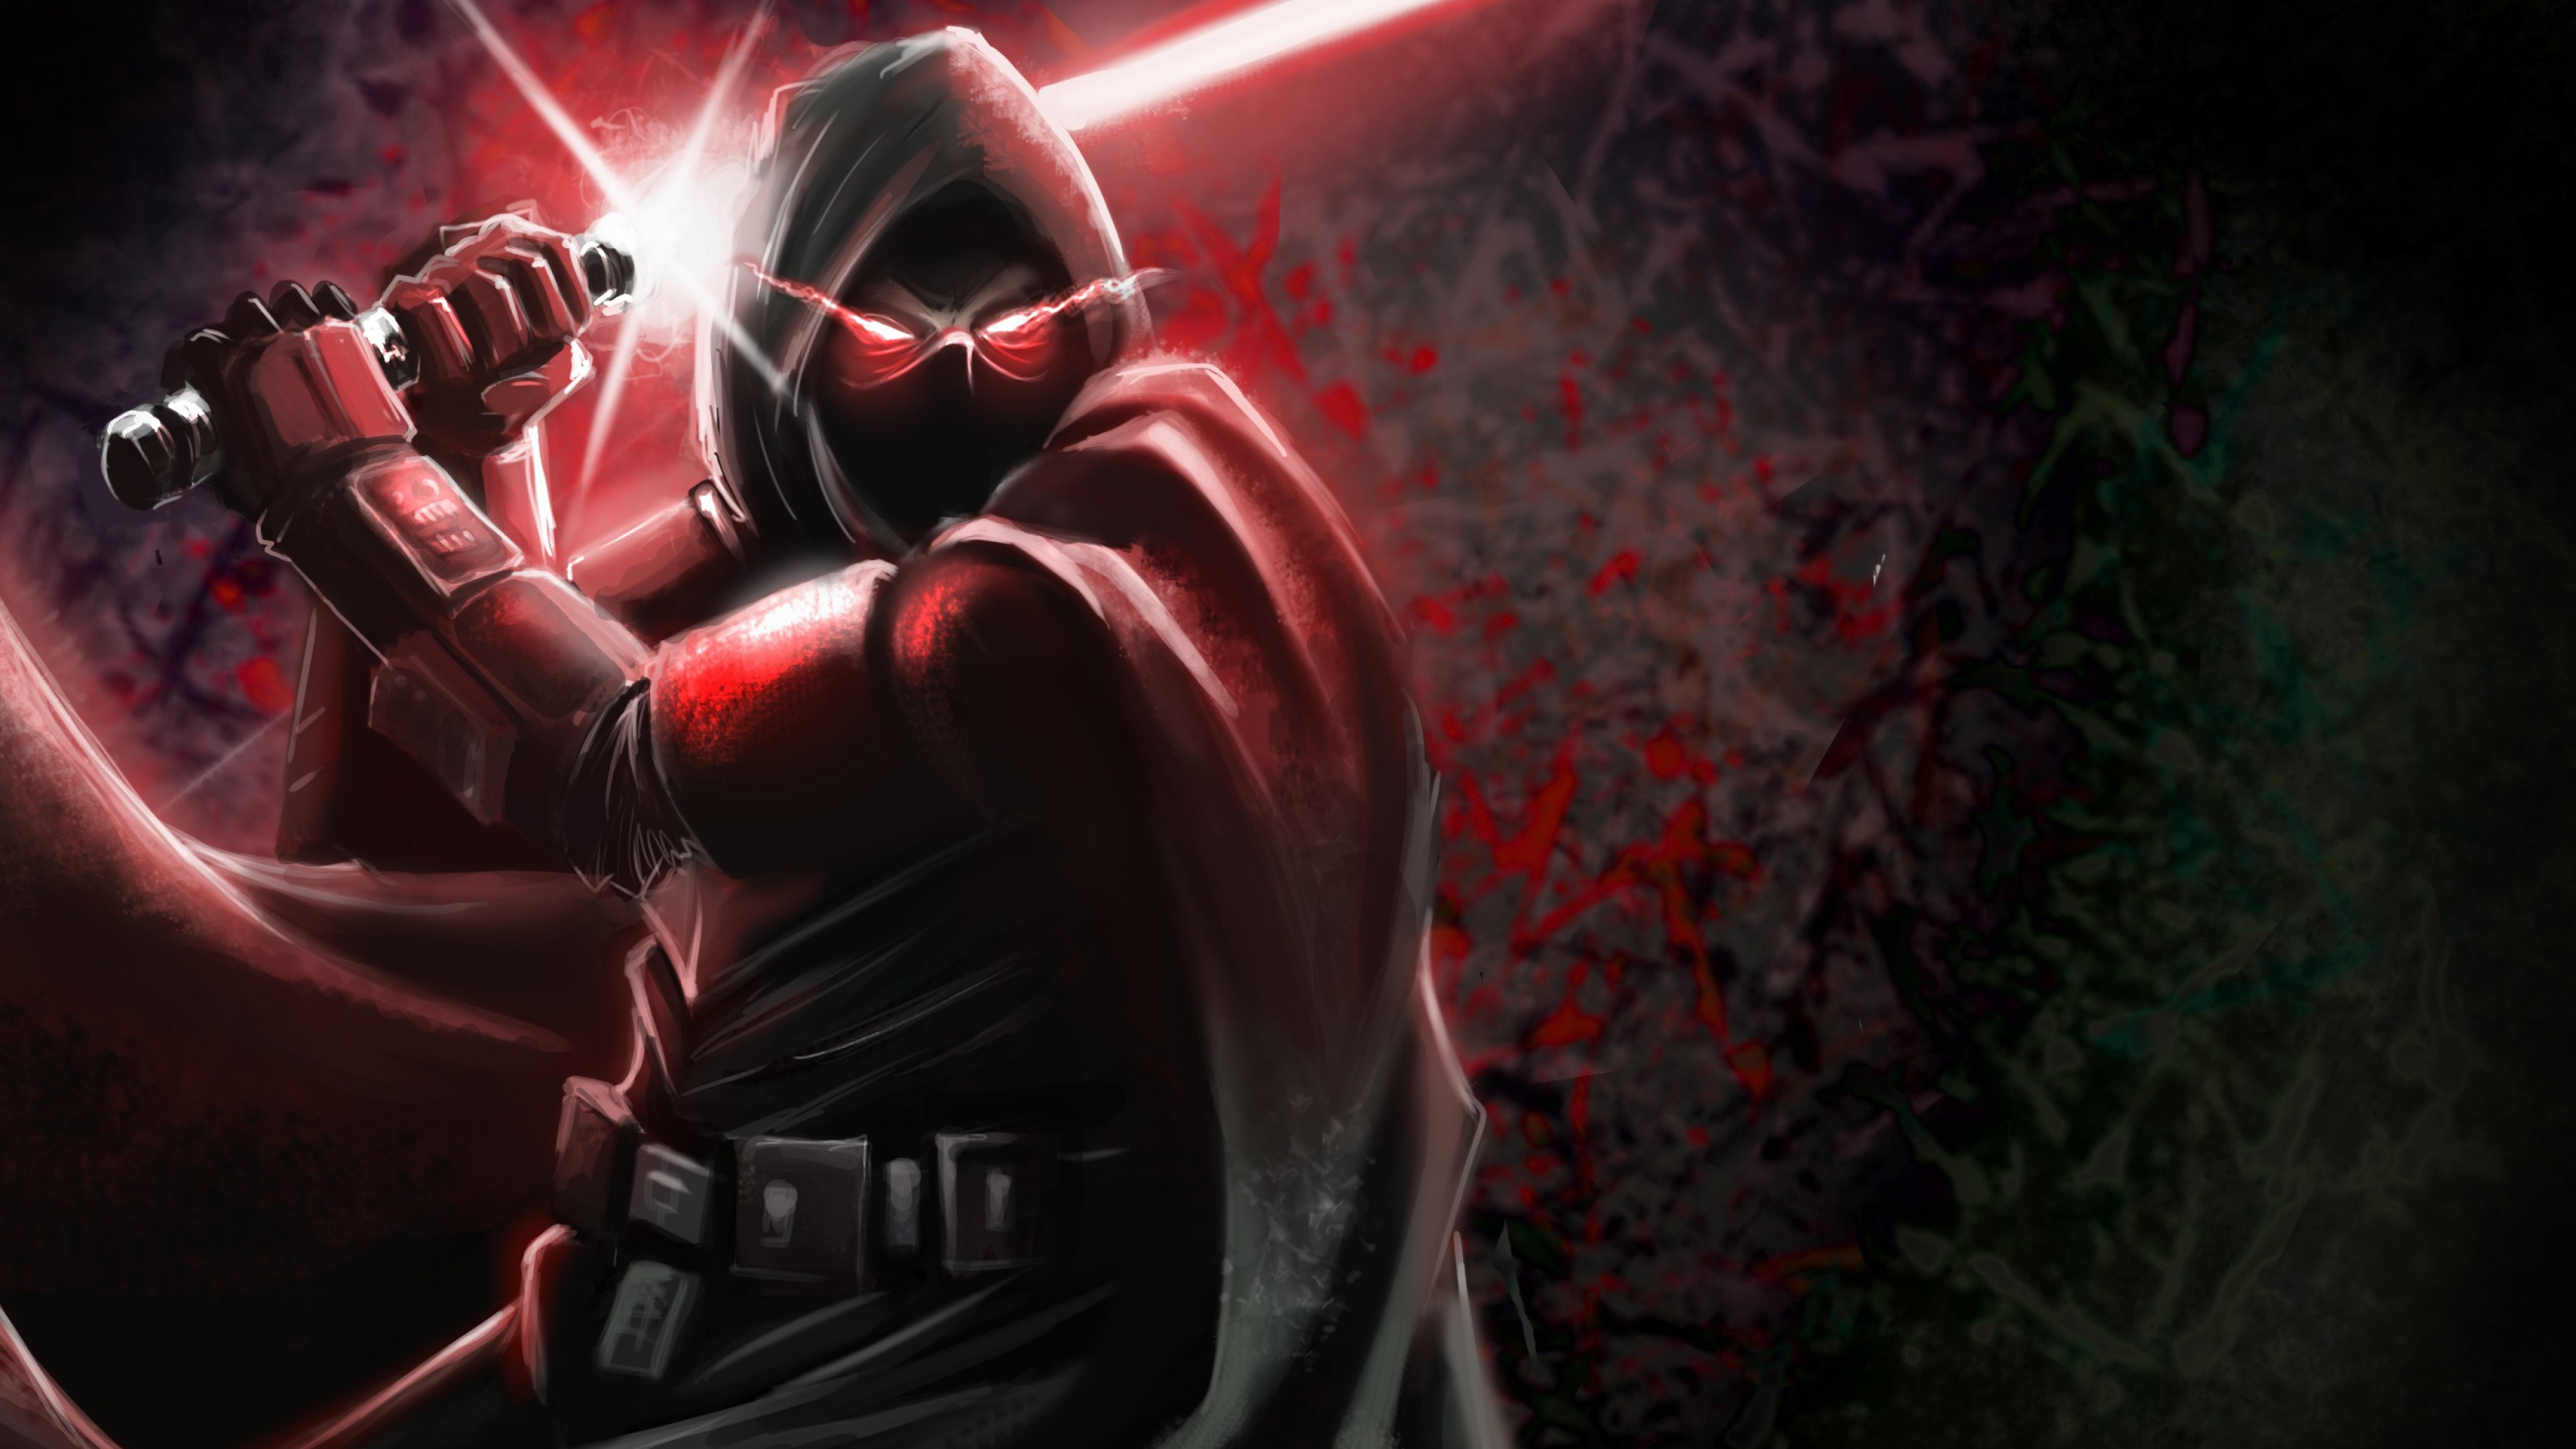 Star wars widescreen wallpaper 72 images - Star wars cool backgrounds ...